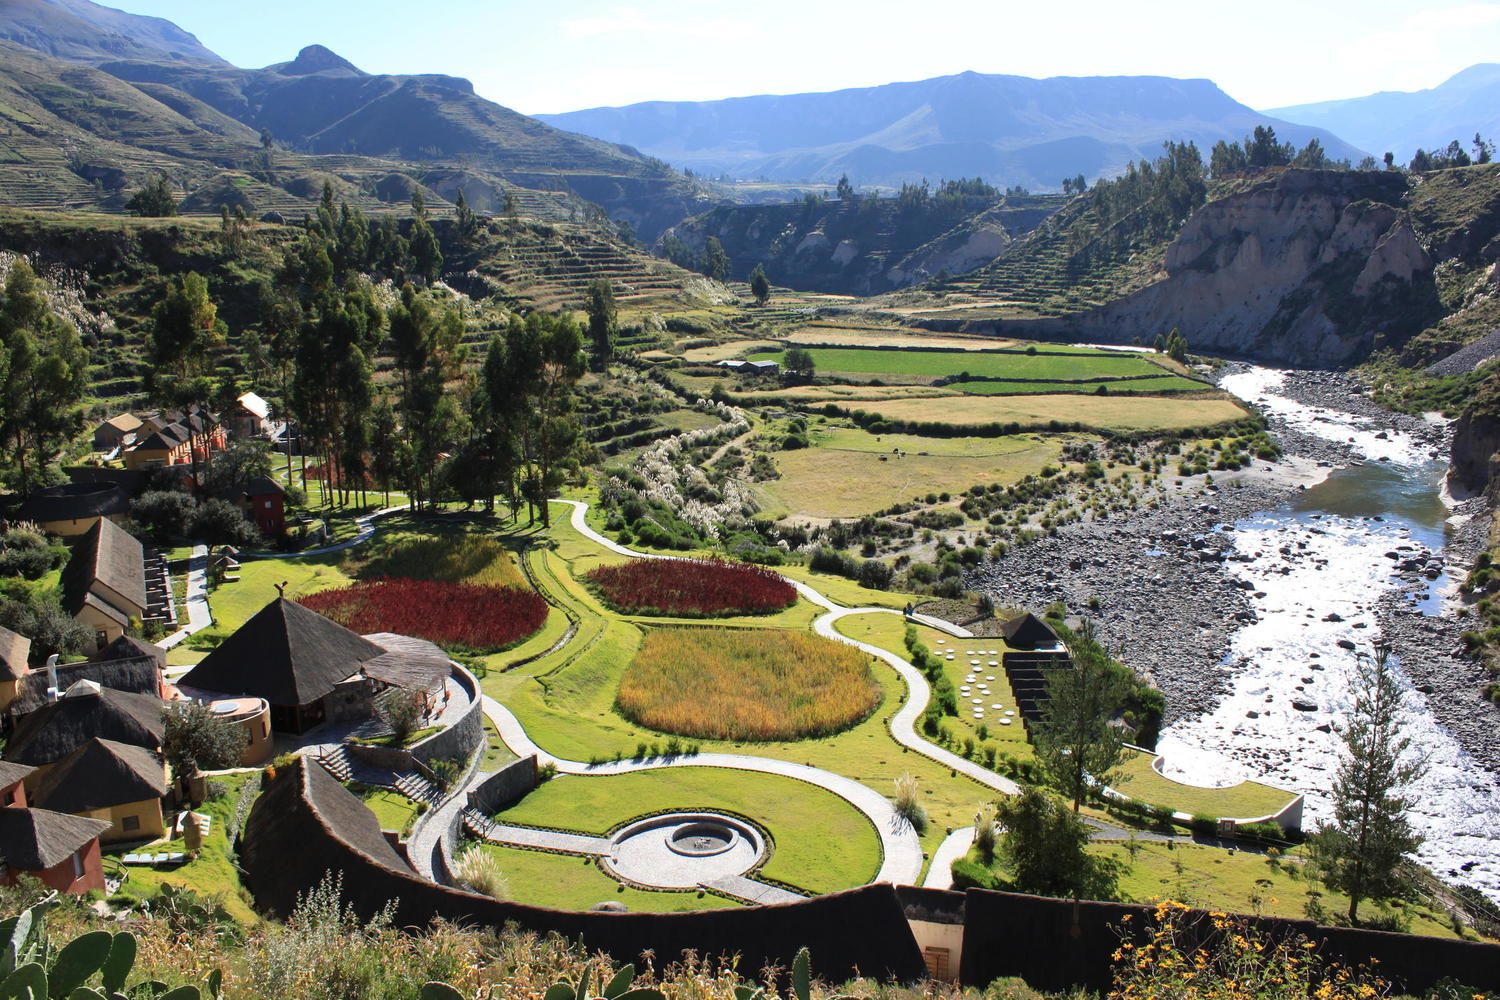 View of the Colca Lodge